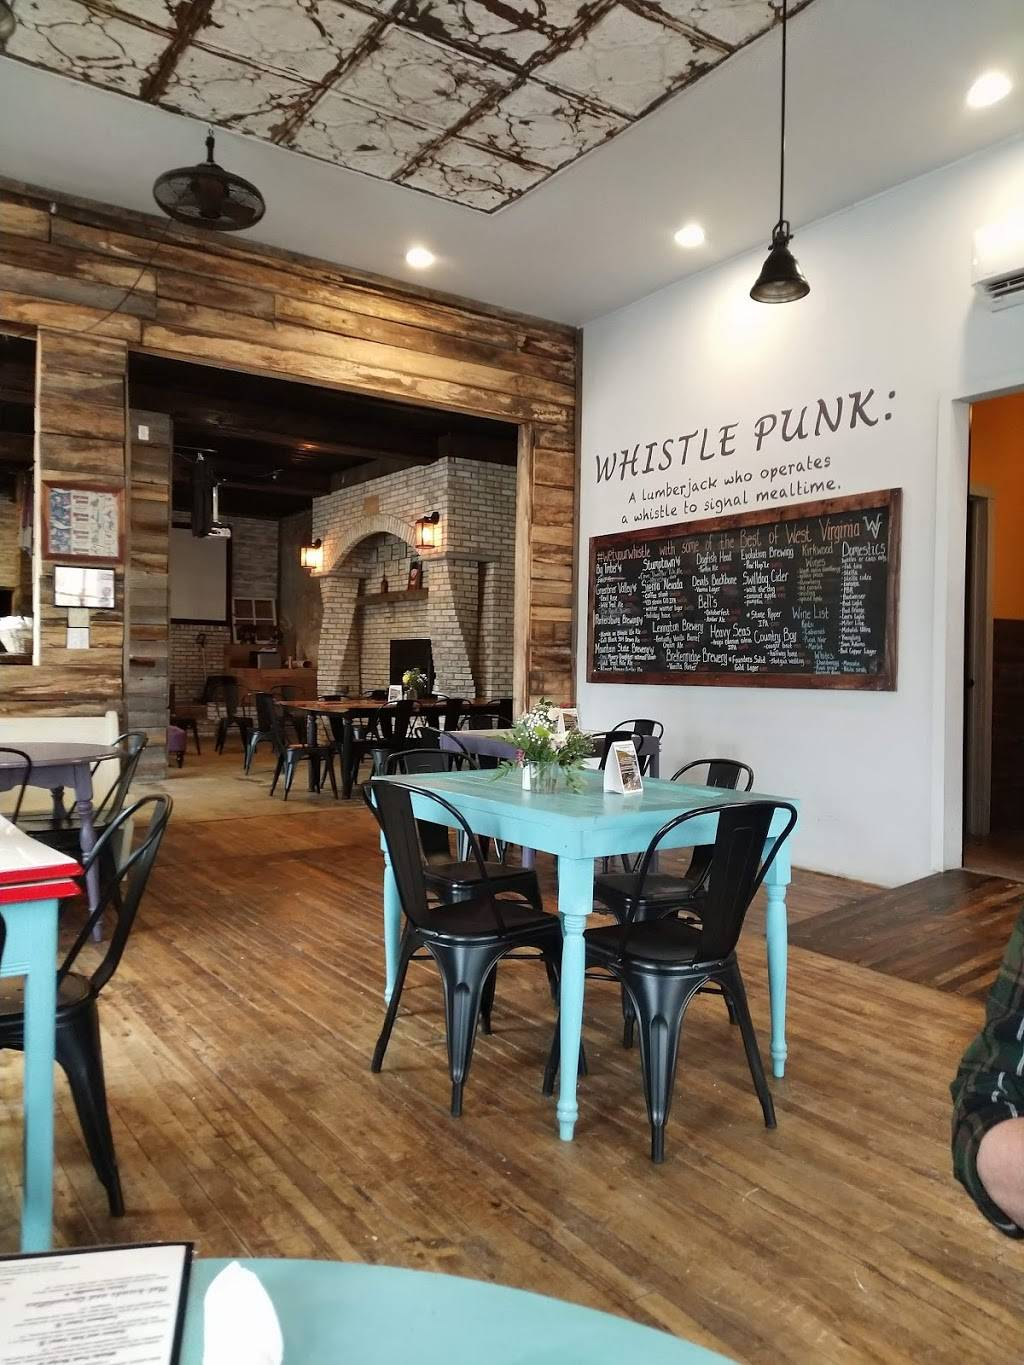 Whistle Punk Grill & Taphouse   restaurant   35 E Main St, Richwood, WV 26261, USA   3048462020 OR +1 304-846-2020